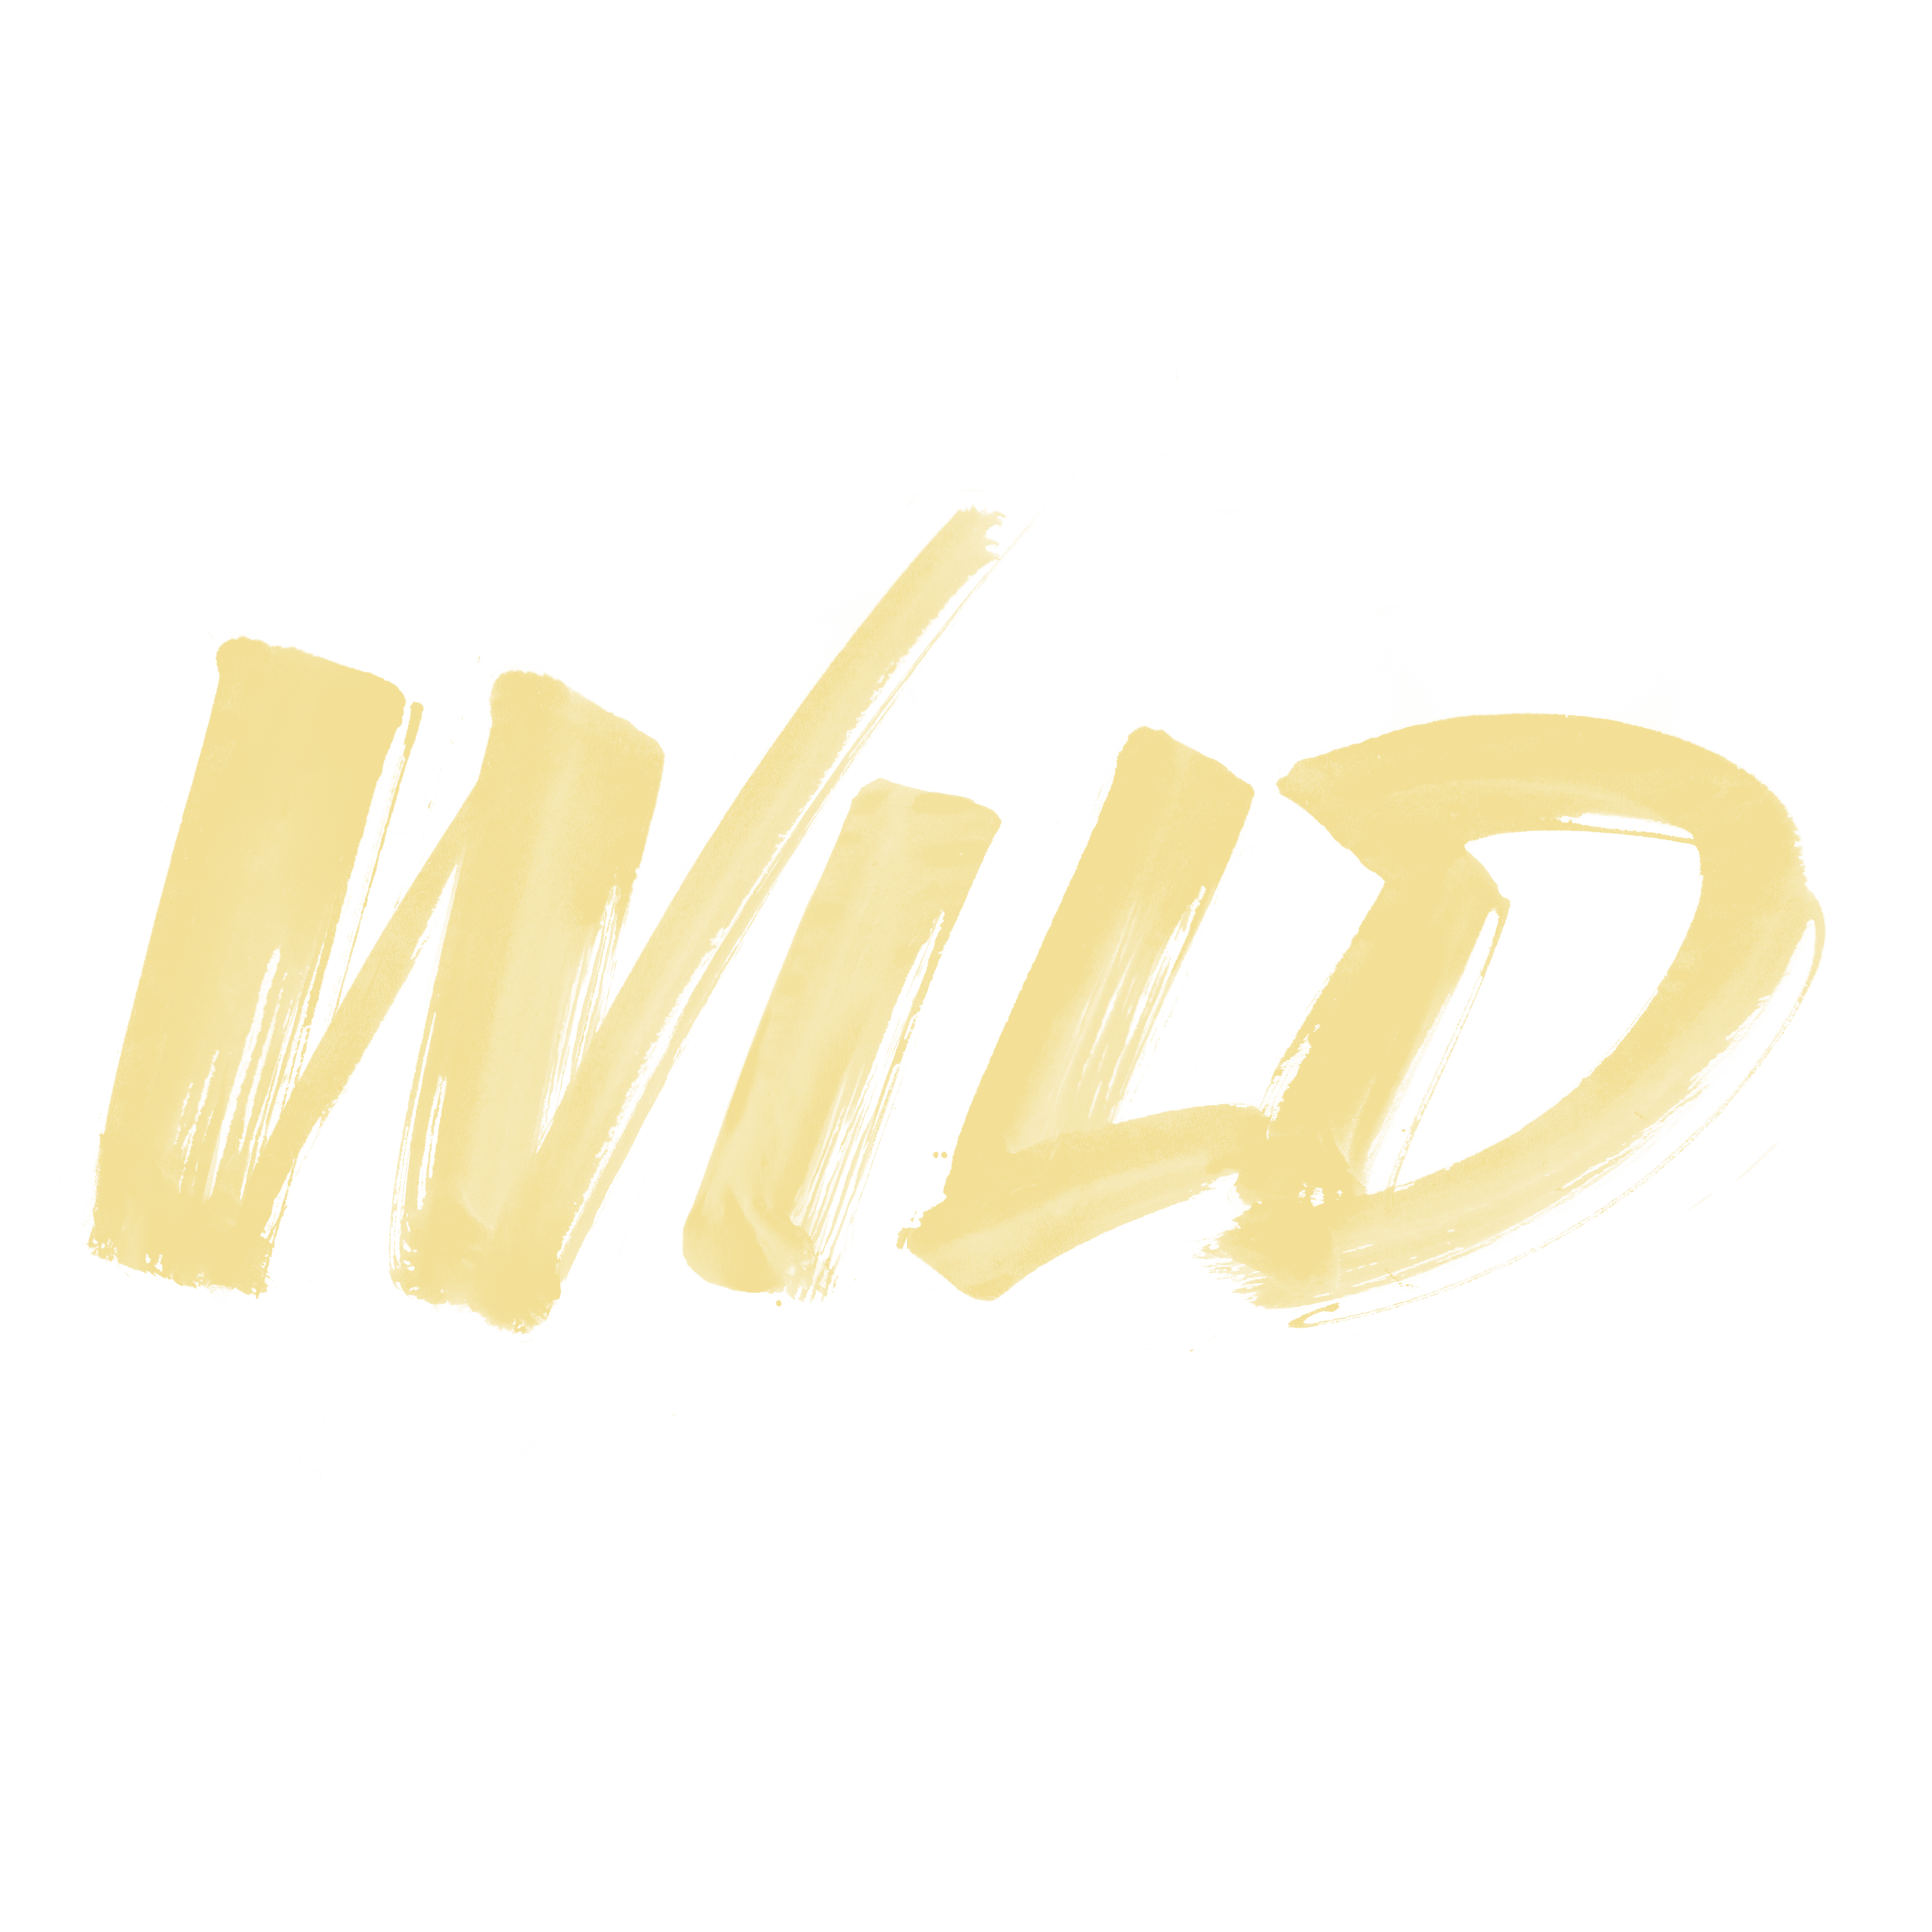 Wild download free clip art with a transparent background on.